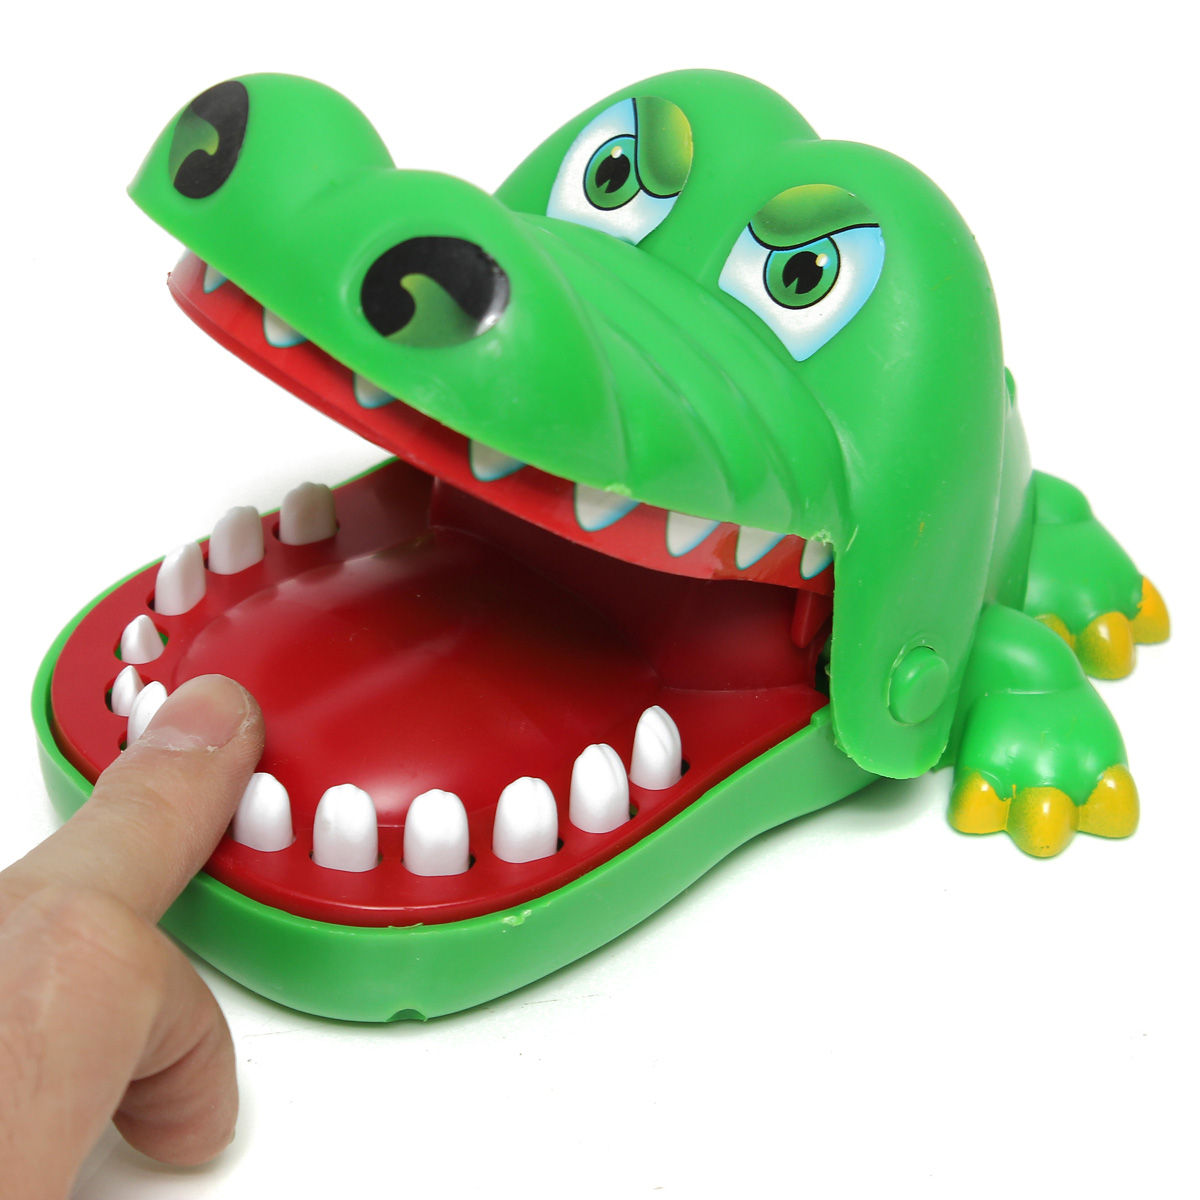 Toys For Biting : Big crocodile mouth dentist bite finger game toy family